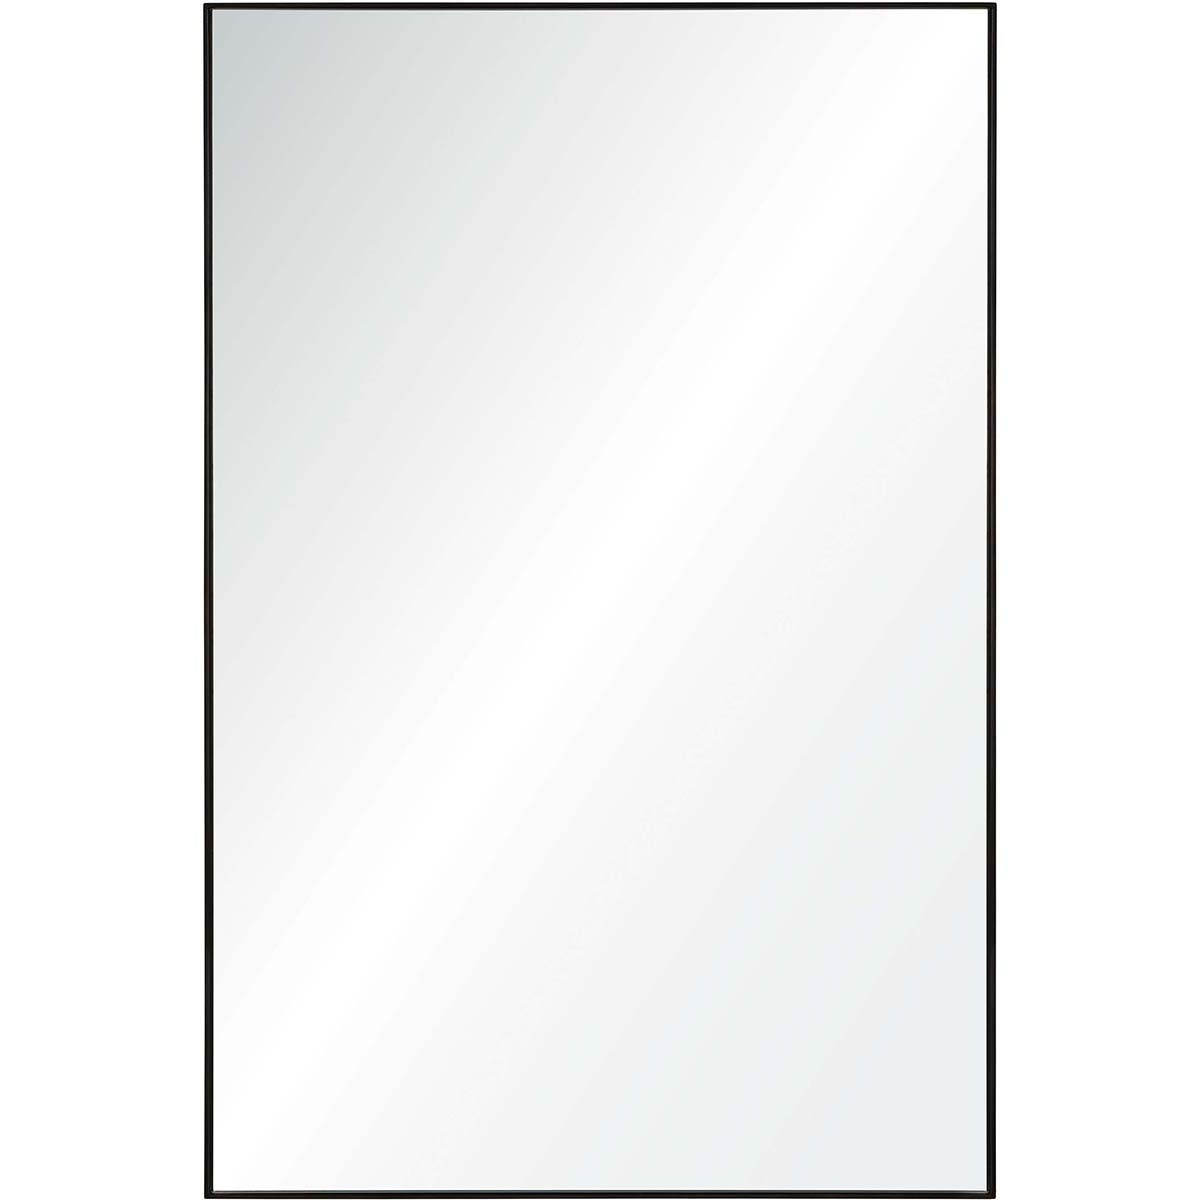 Search Vale-Mirror Product Picture 1273